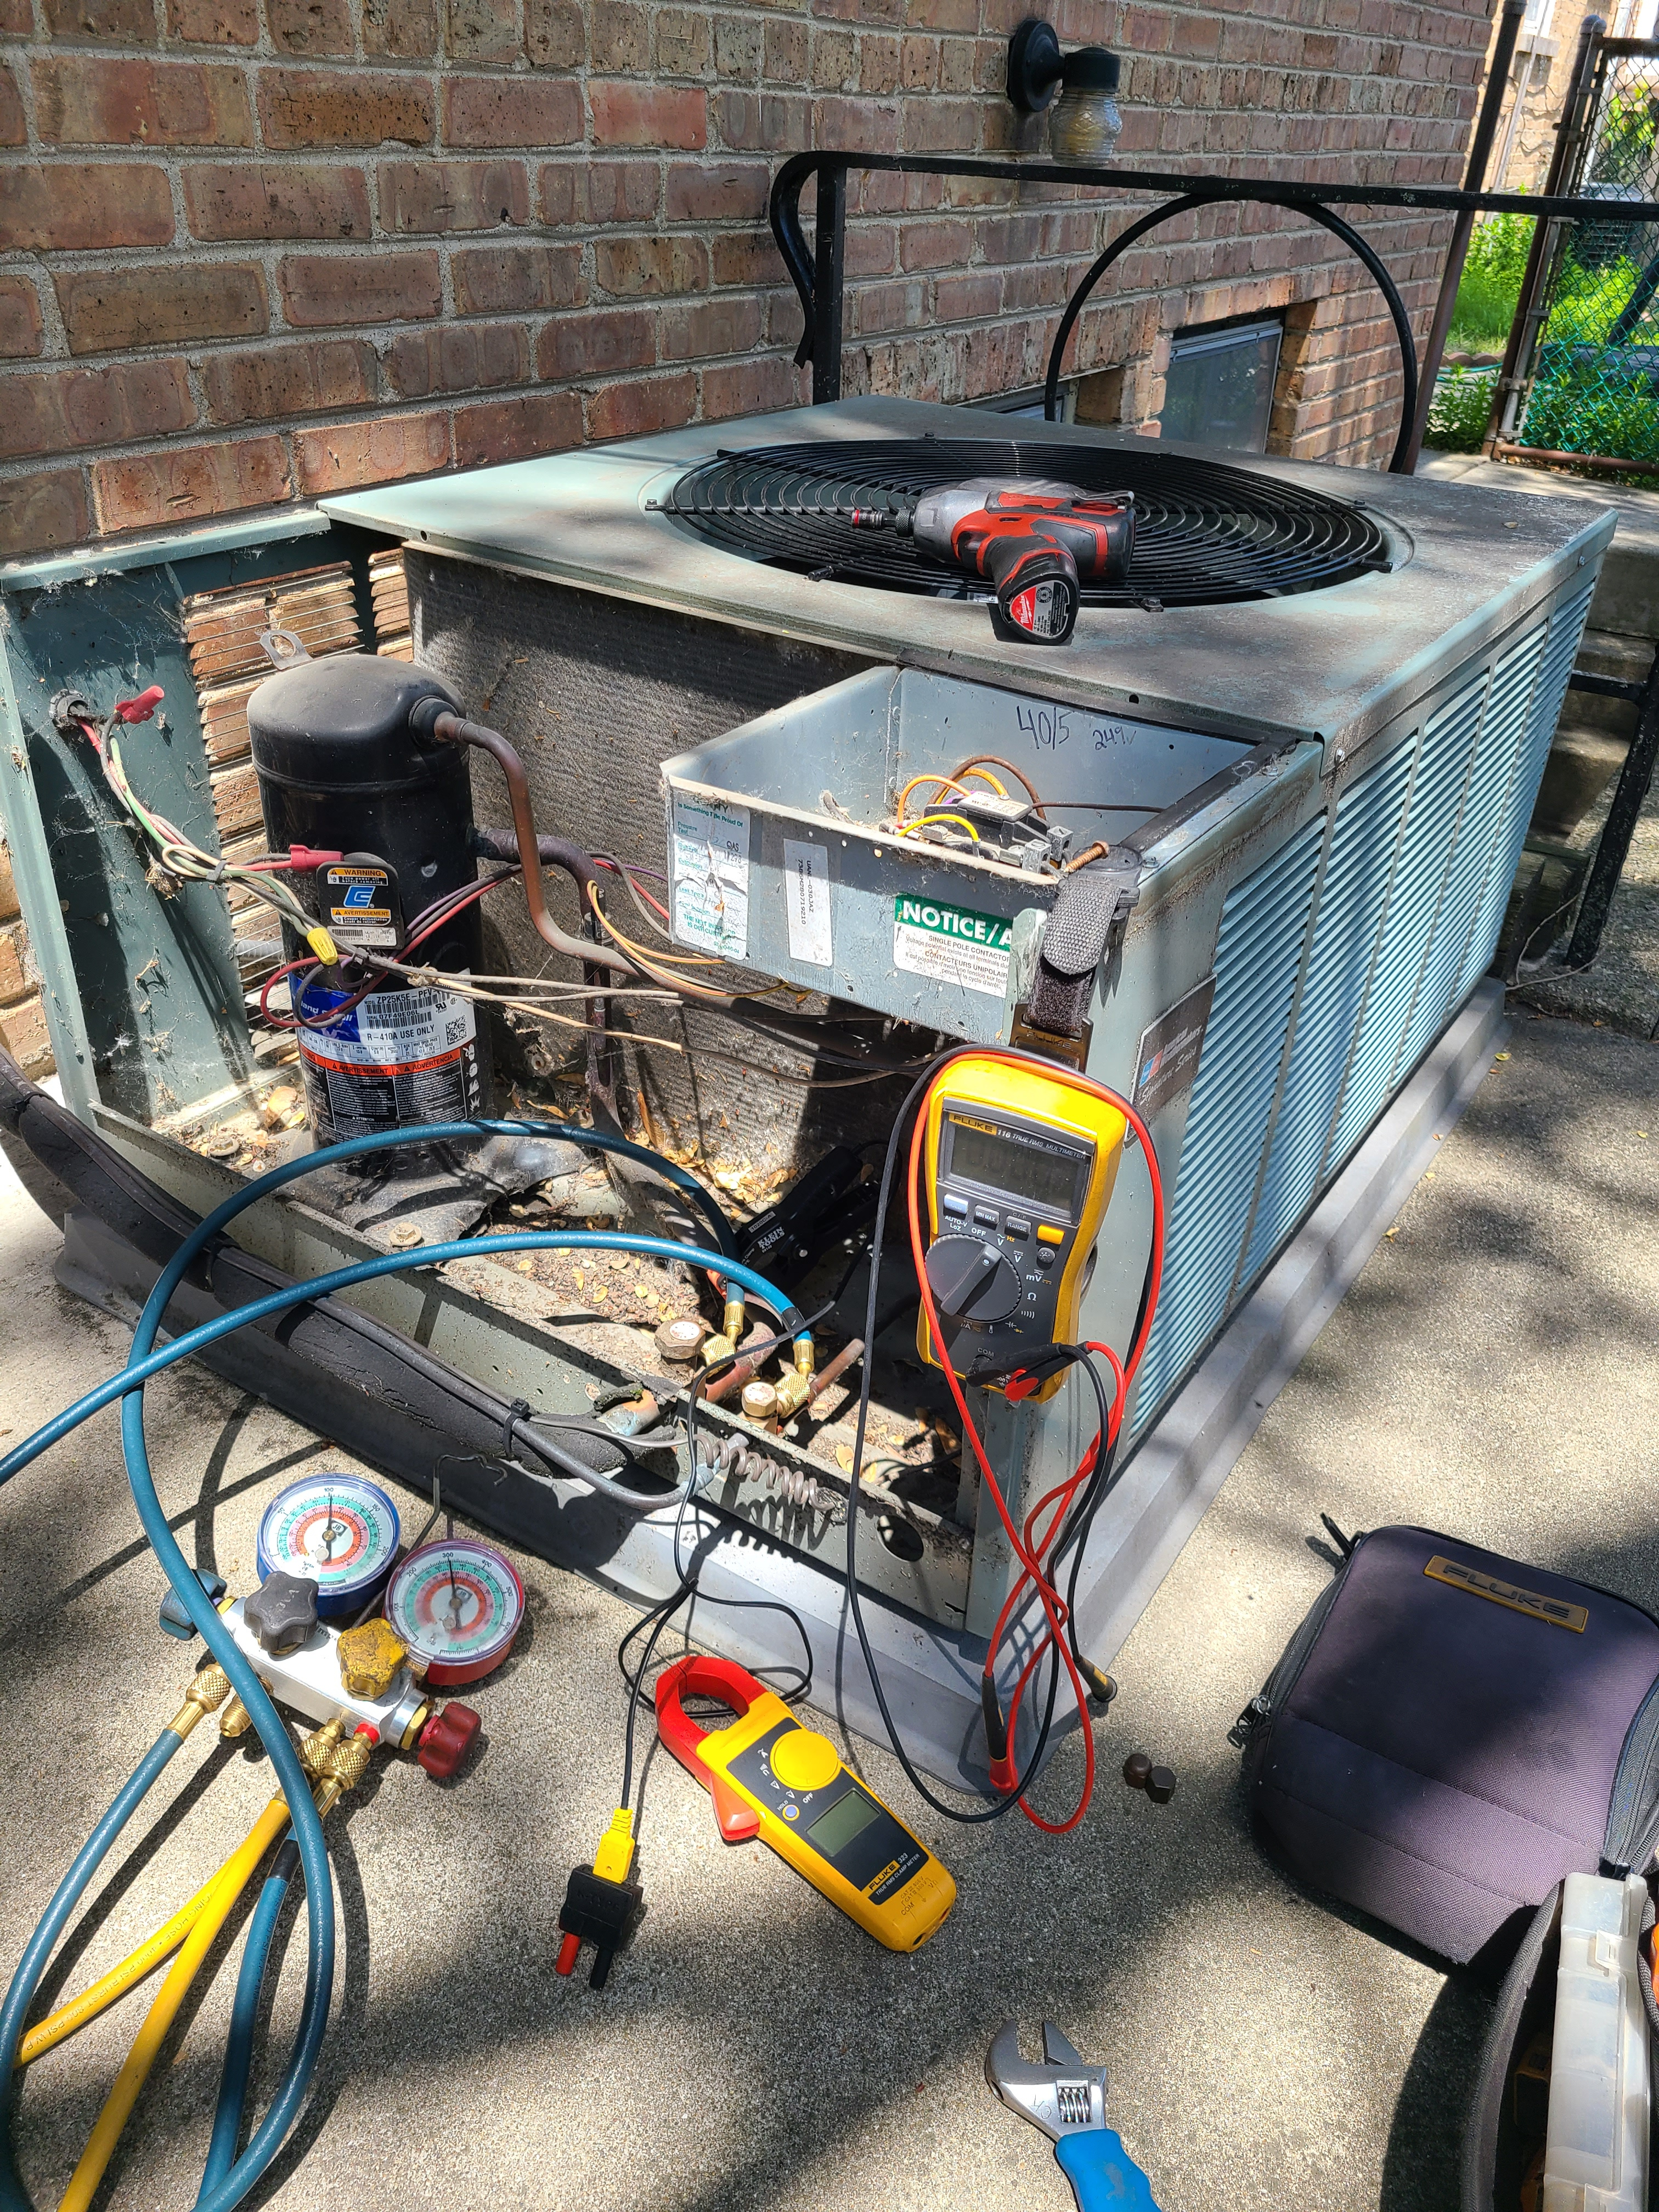 Ruud summer ac tune up. System cleaned and checked and ready for summer.